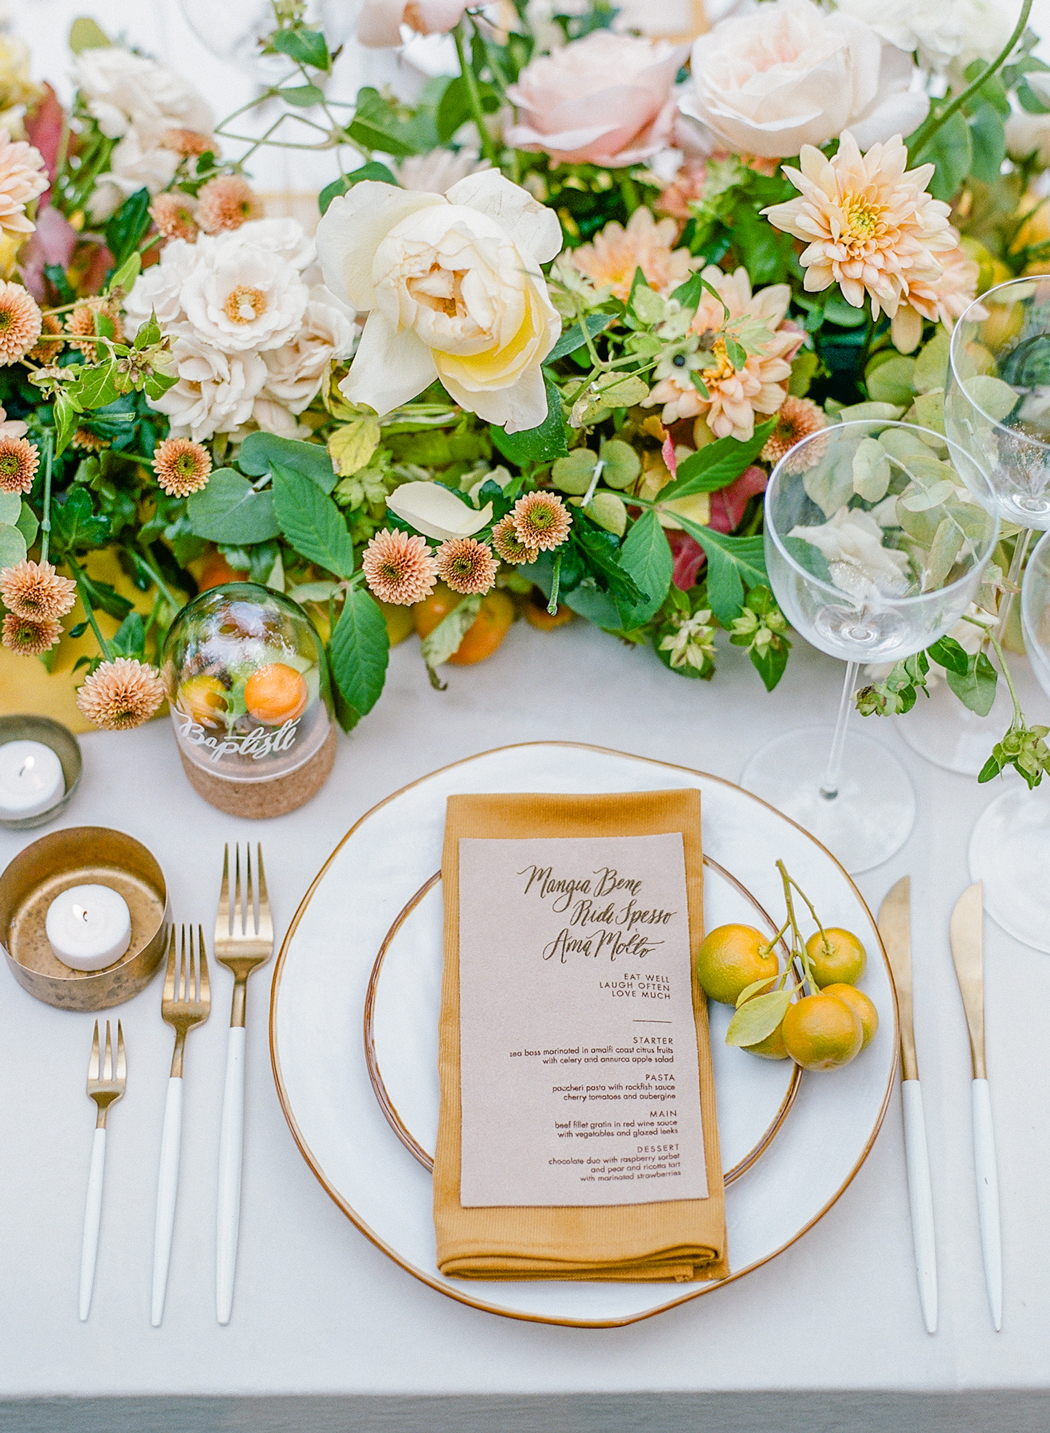 white and gold place settings with citrus floral table accents